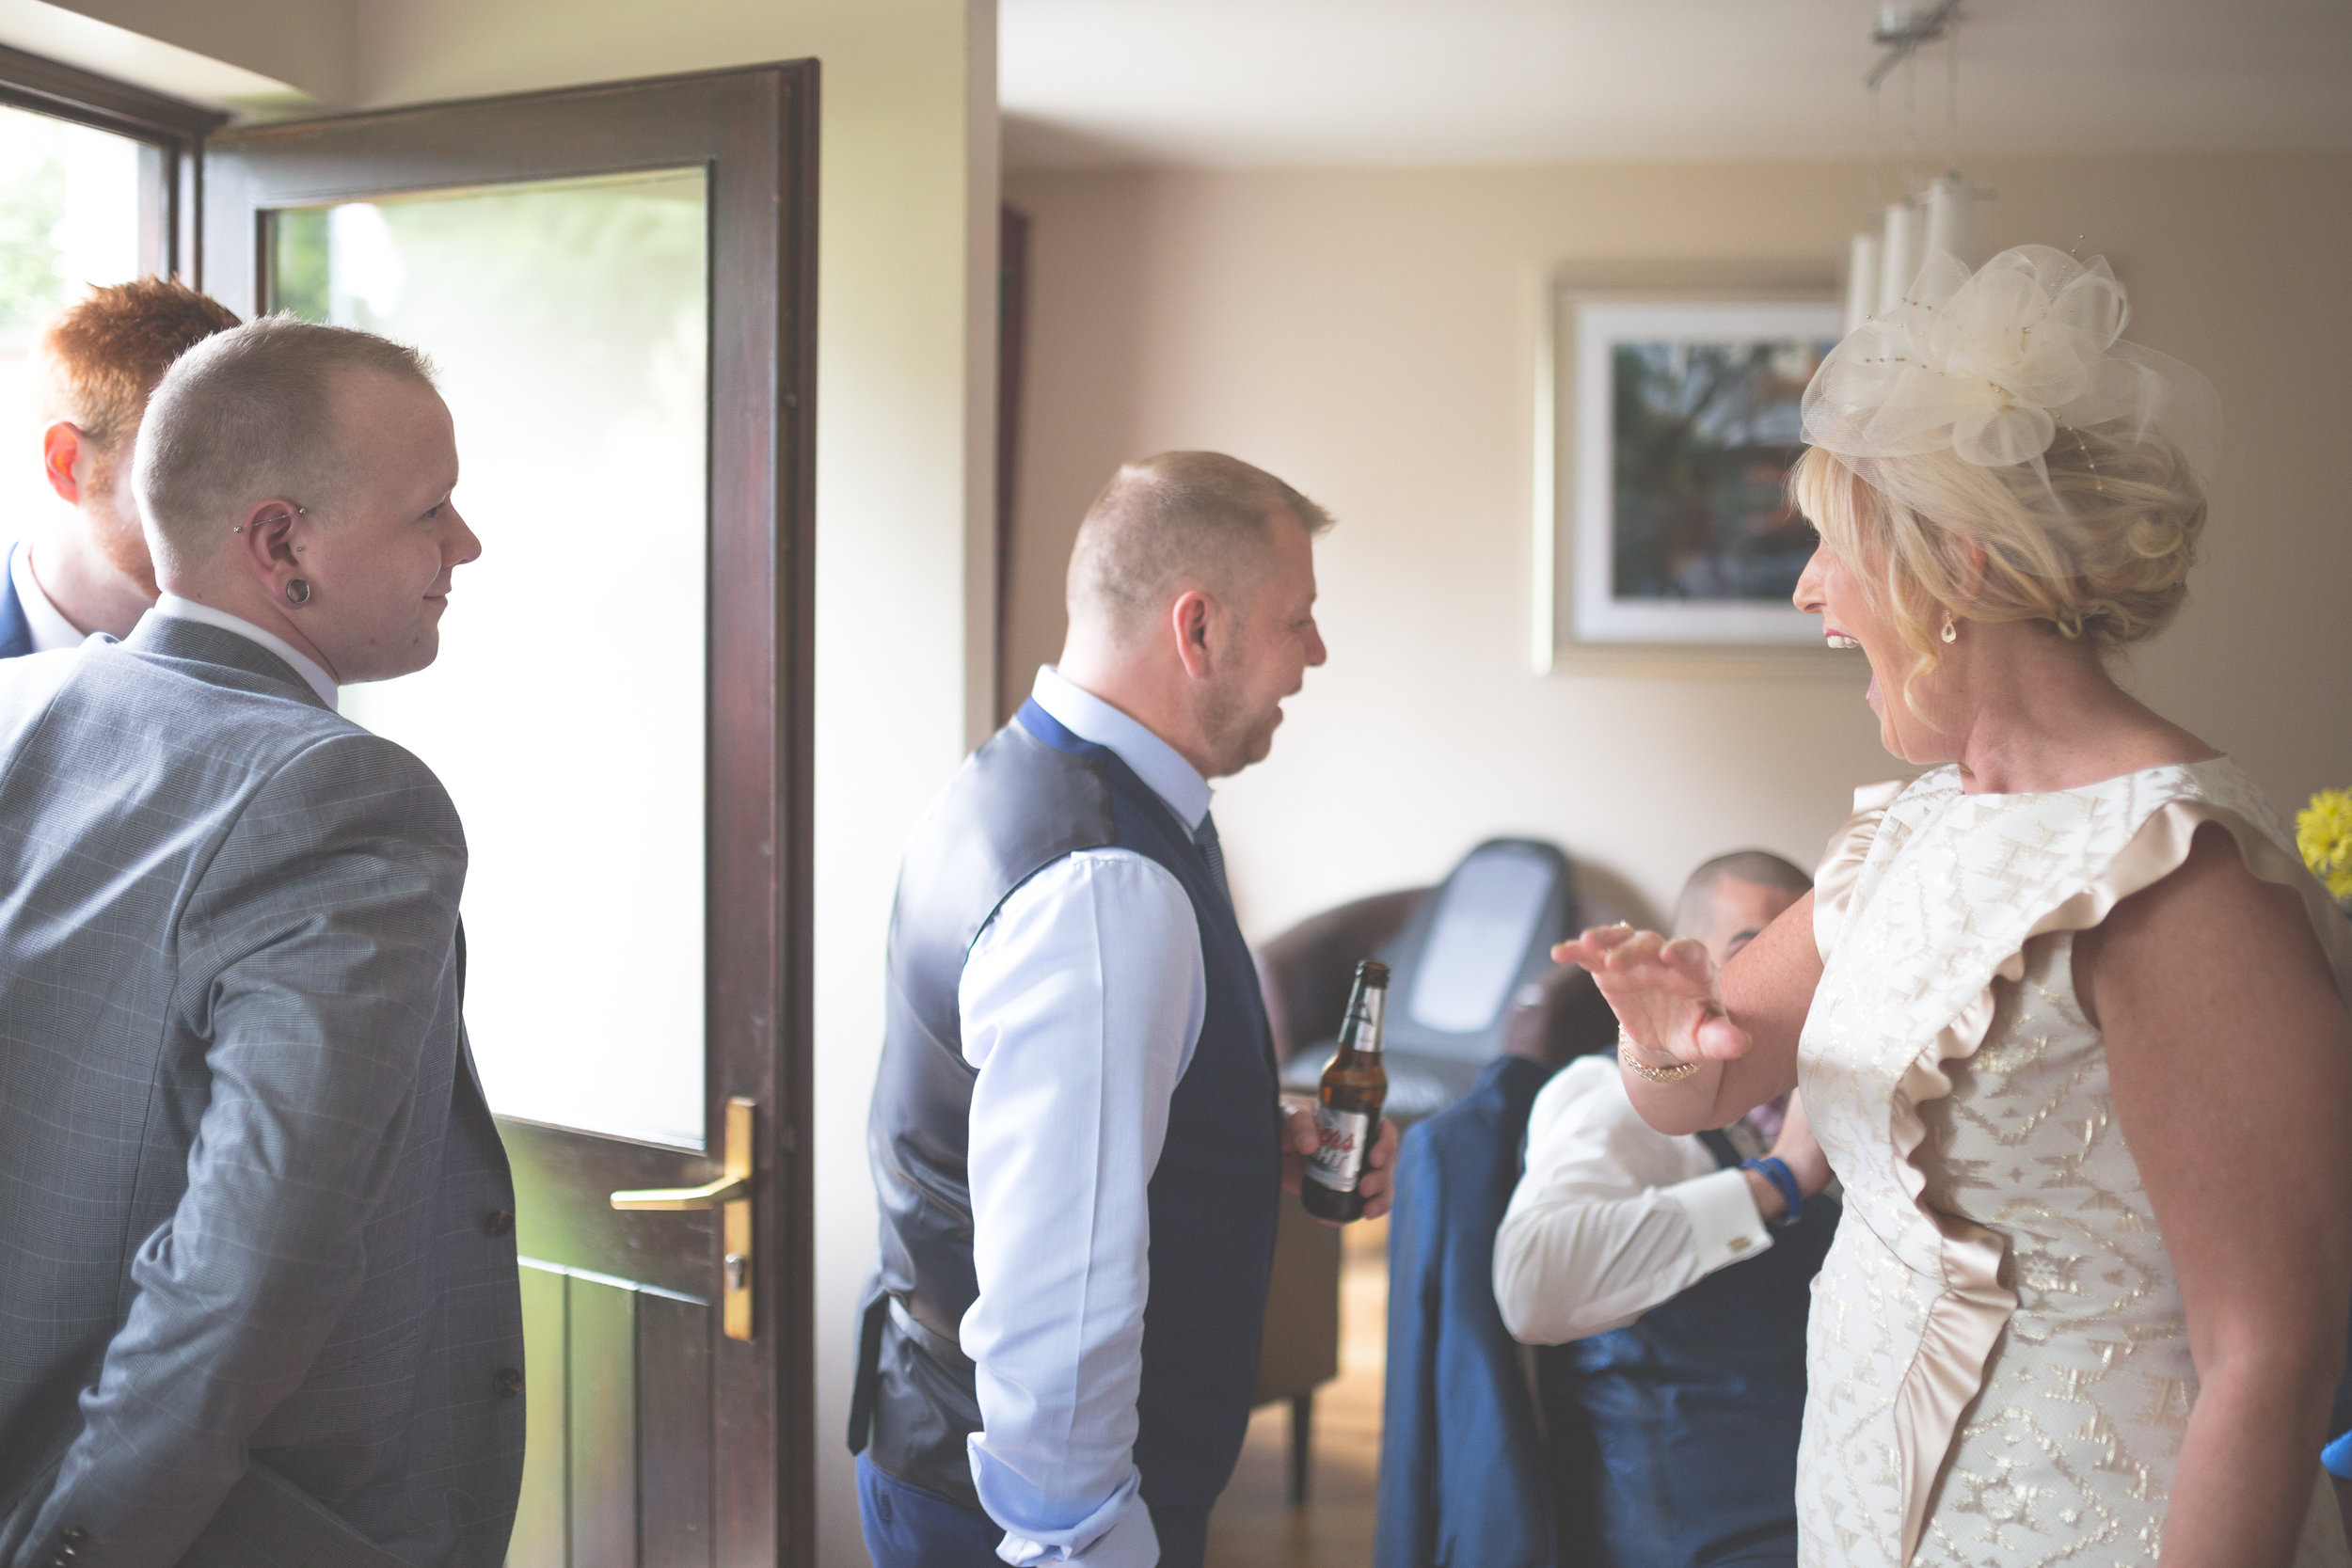 Antoinette & Stephen - Groom & Groomsmen | Brian McEwan Photography | Wedding Photographer Northern Ireland 45.jpg